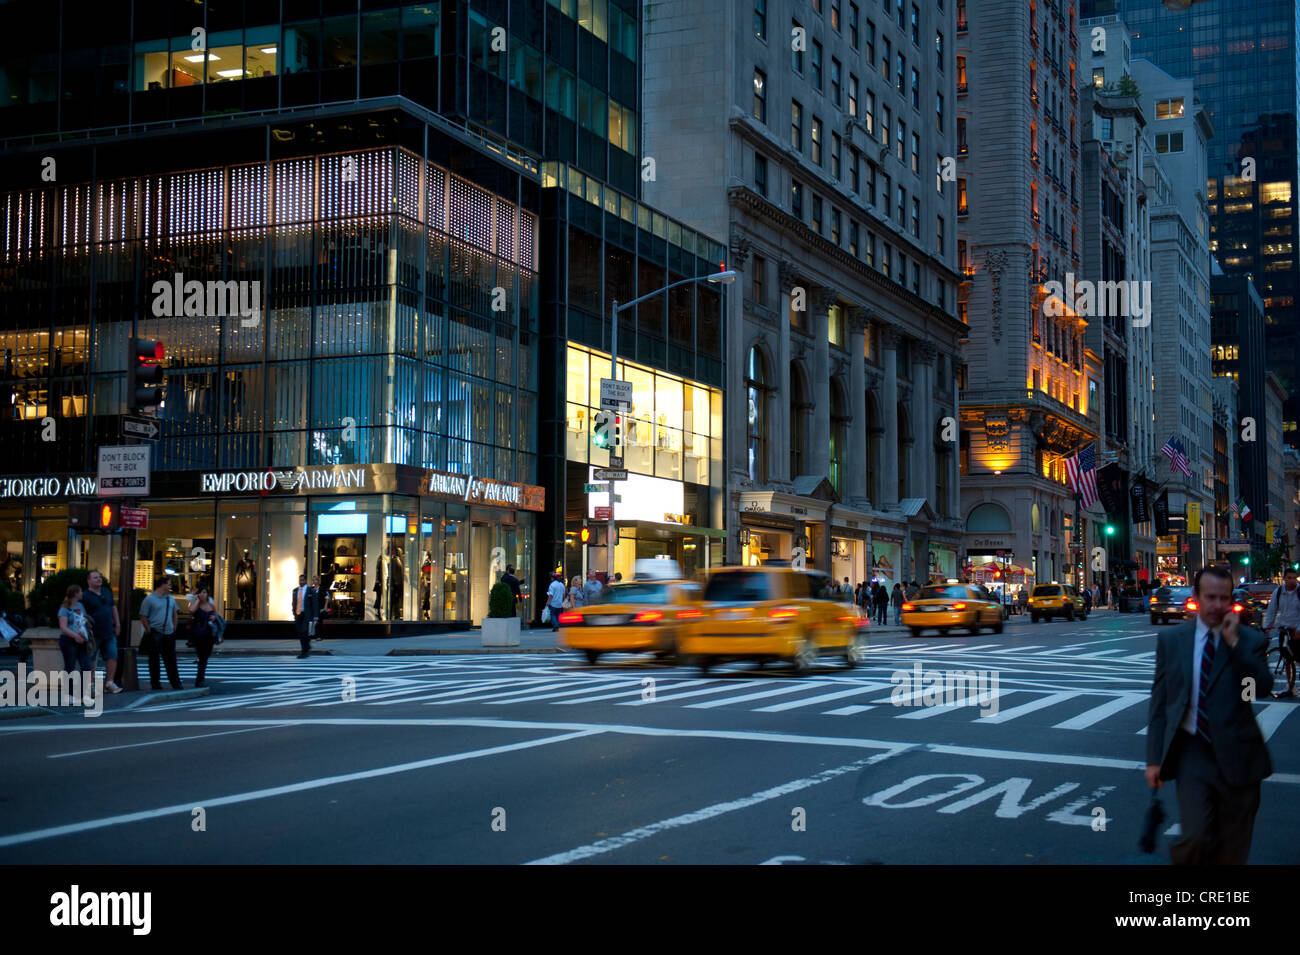 Traffic at dusk, yellow cabs, taxis, Armani store at back, 5th Avenue, Midtown, Manhattan, New York City, USA, North - Stock Image